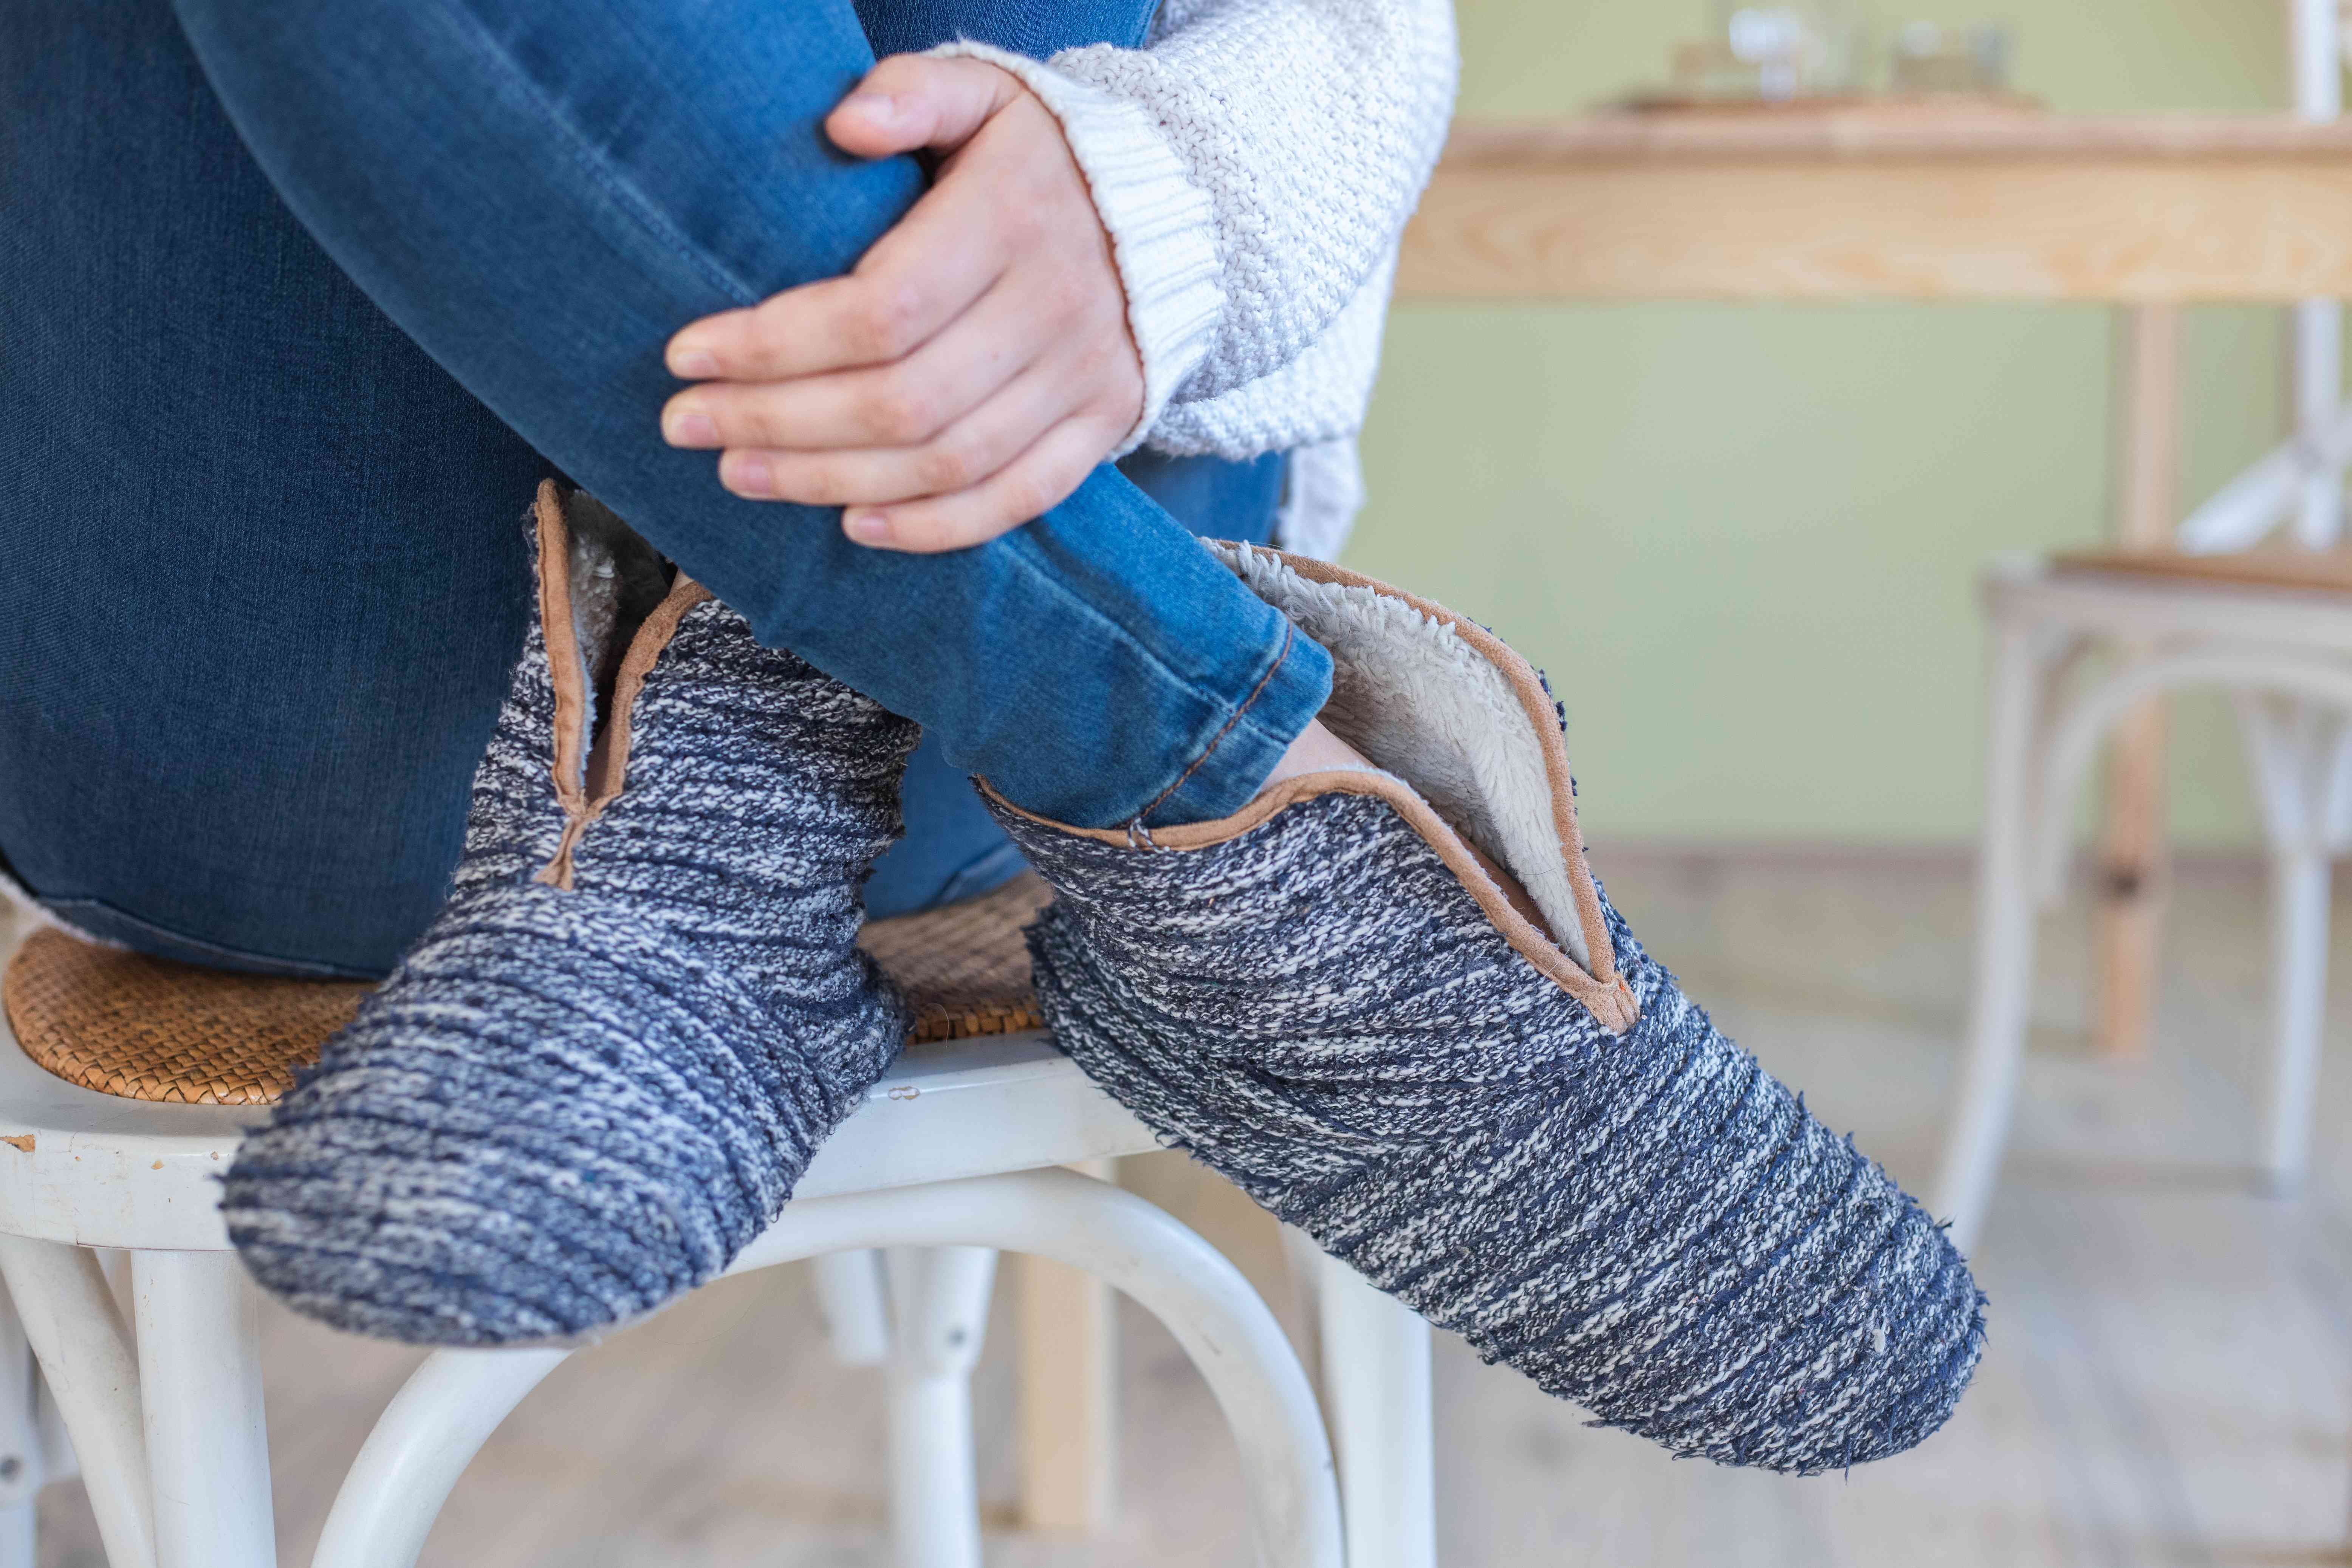 old sweater slippers modeled by woman in jeans who sits on white chair